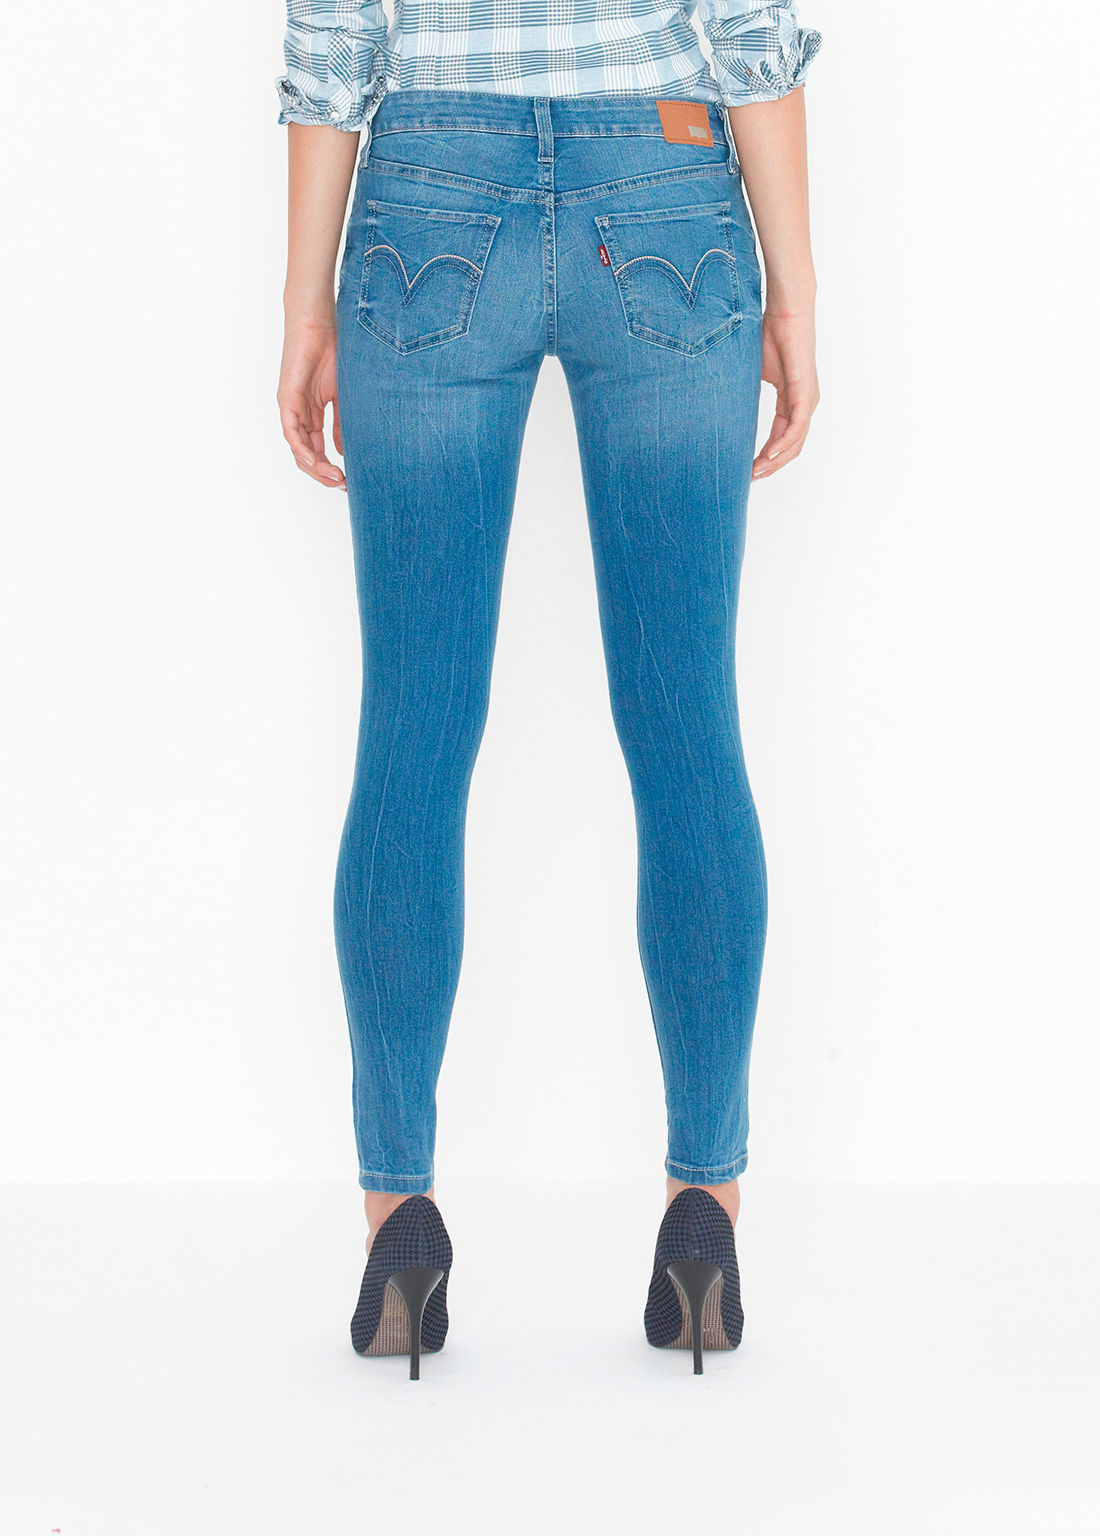 Levi's Juniors 535 Legging Jean - Blue Crackle (0150)